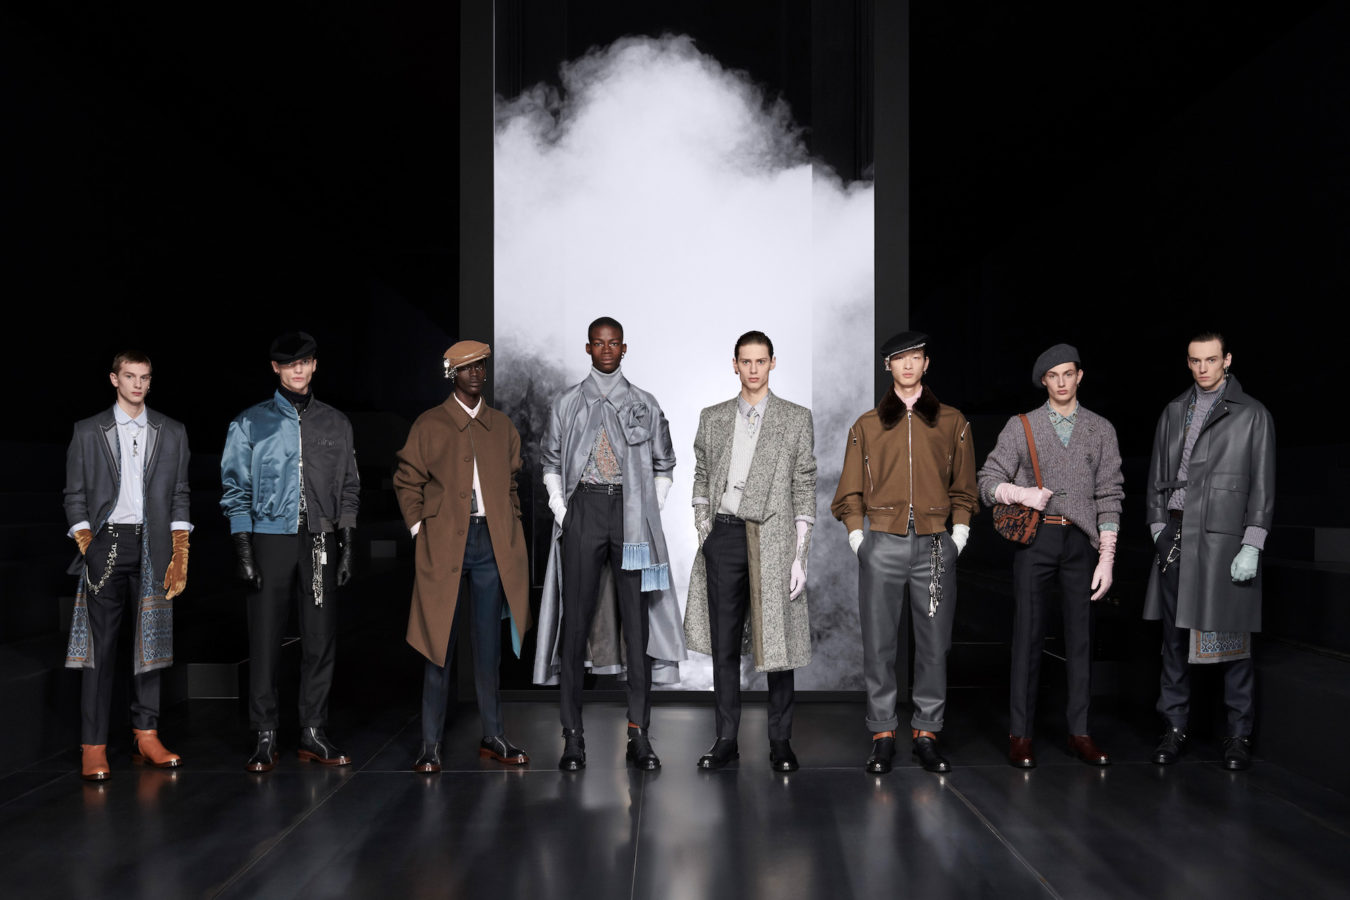 Autumn/Winter 2020 menswear highlights from all your favourite designers